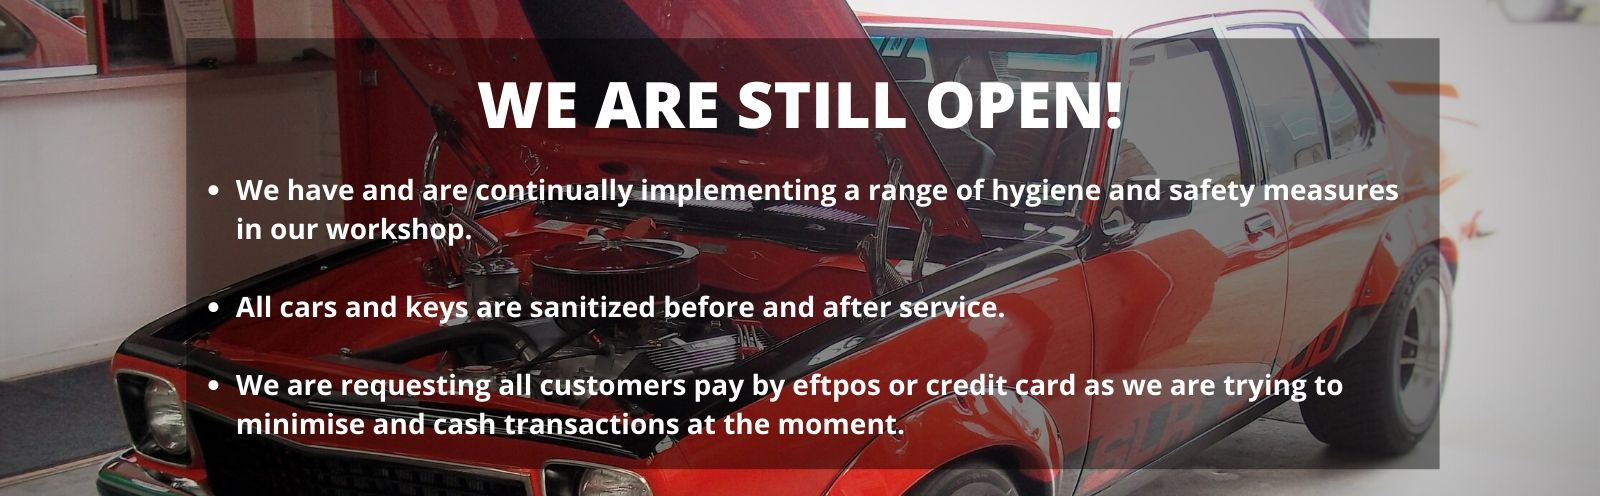 We are still open for car service